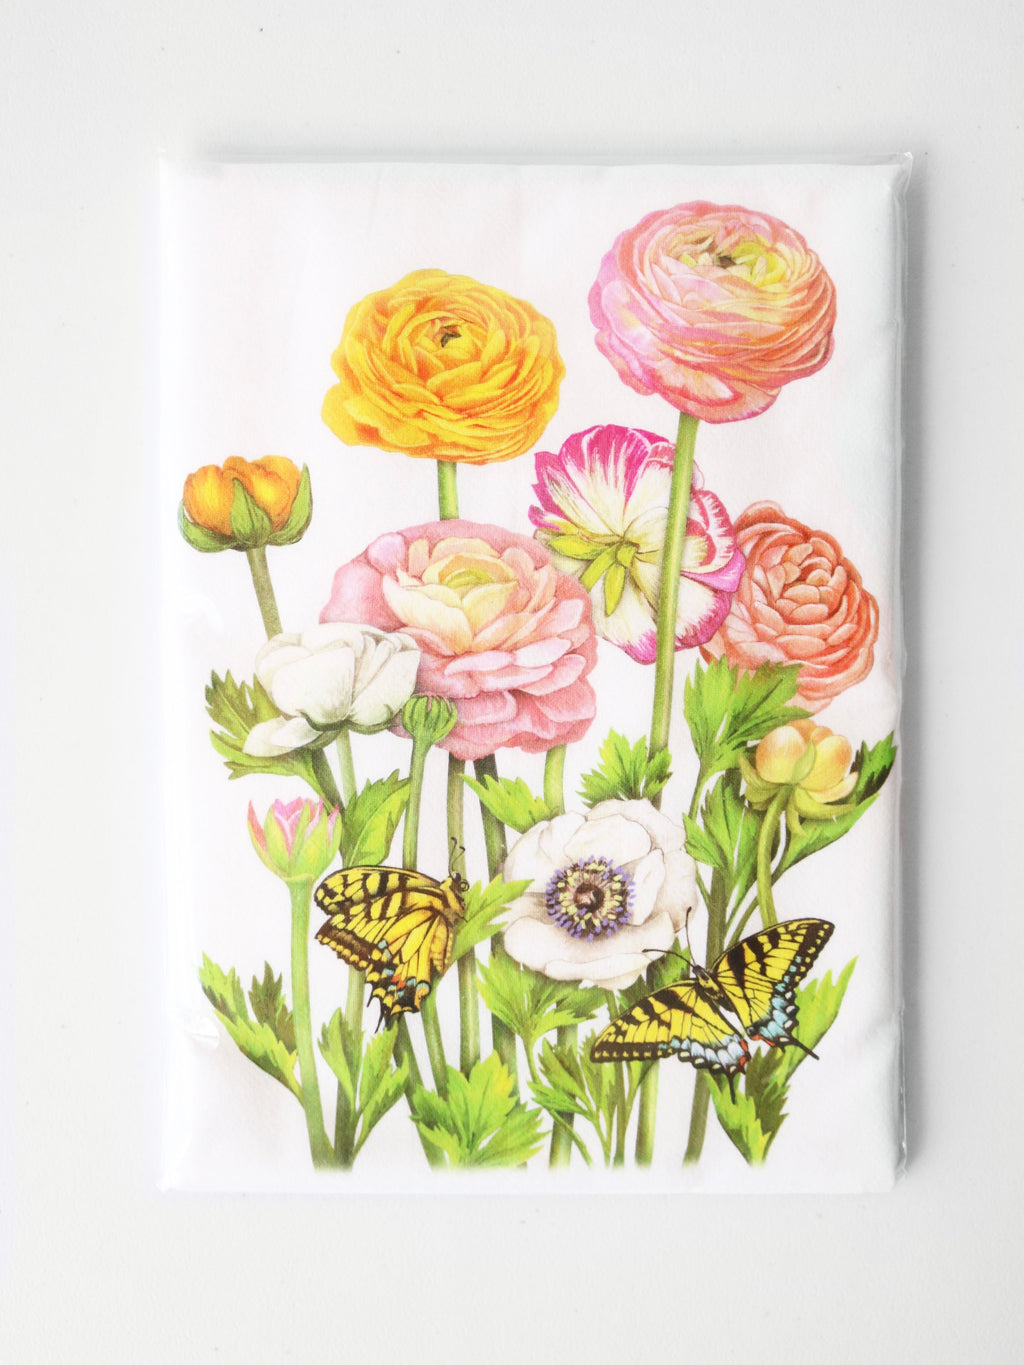 Flowers & Butterflies Flour Sack Towel